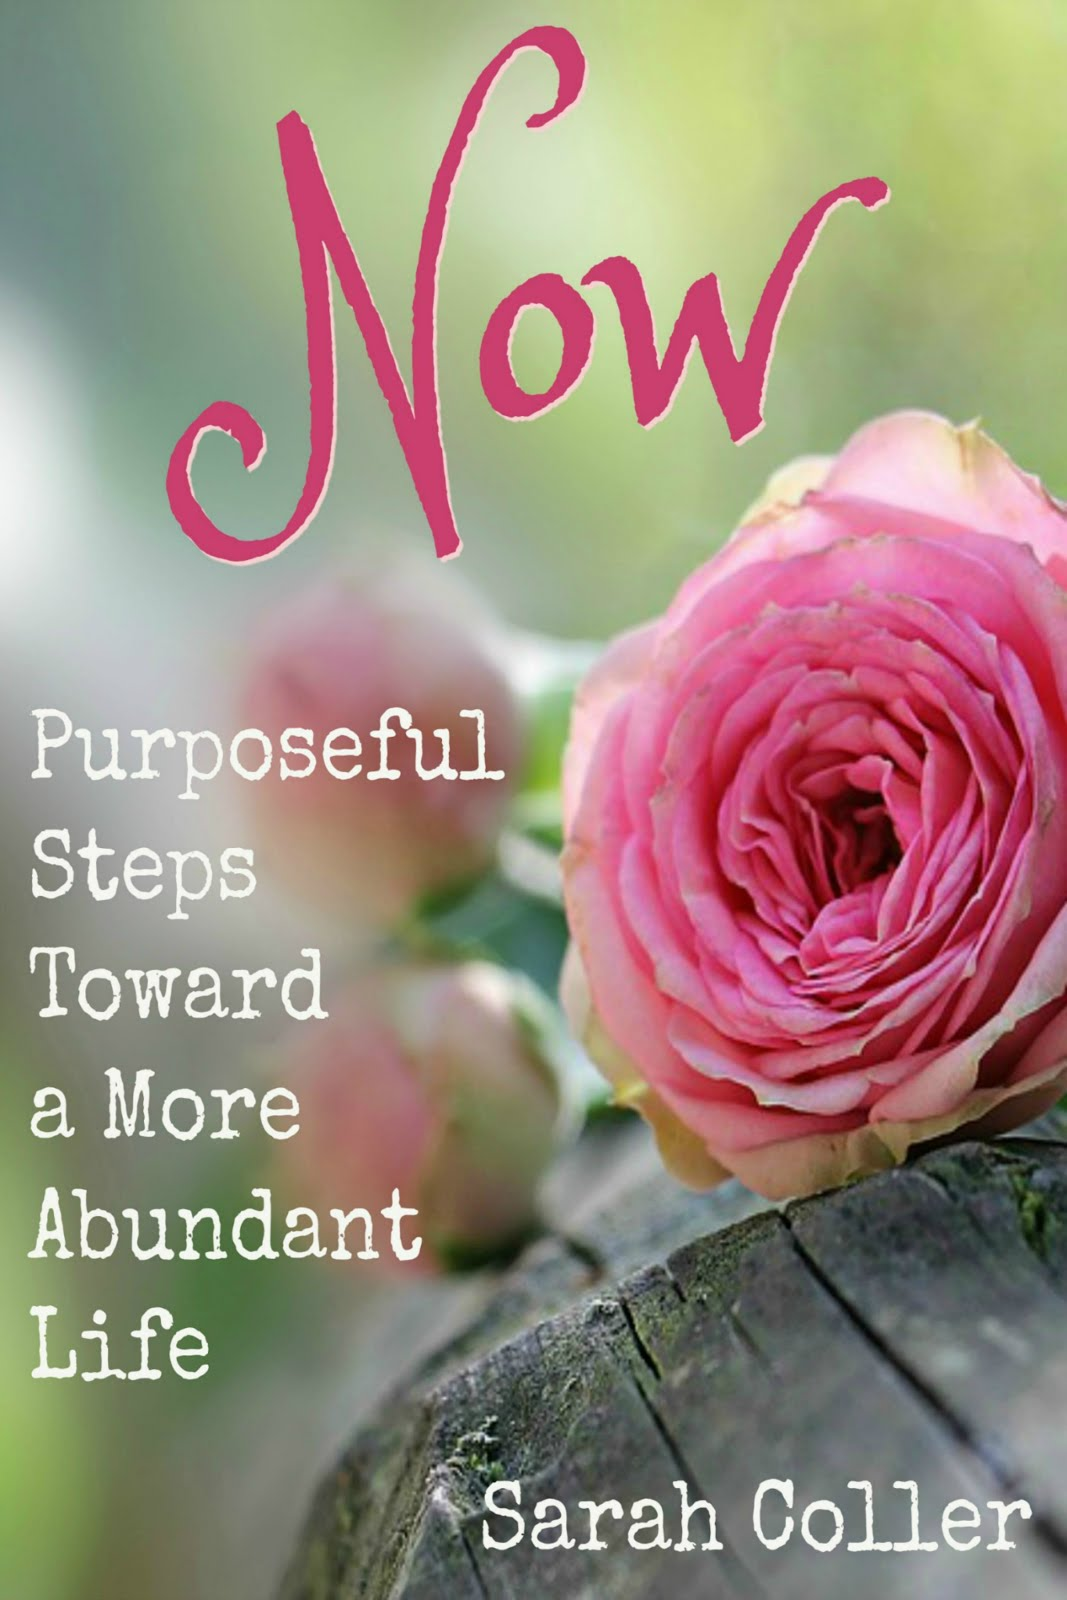 My Devotional is a Perfect Gift for Mothers, Daughters, Grandmothers, and Friends!